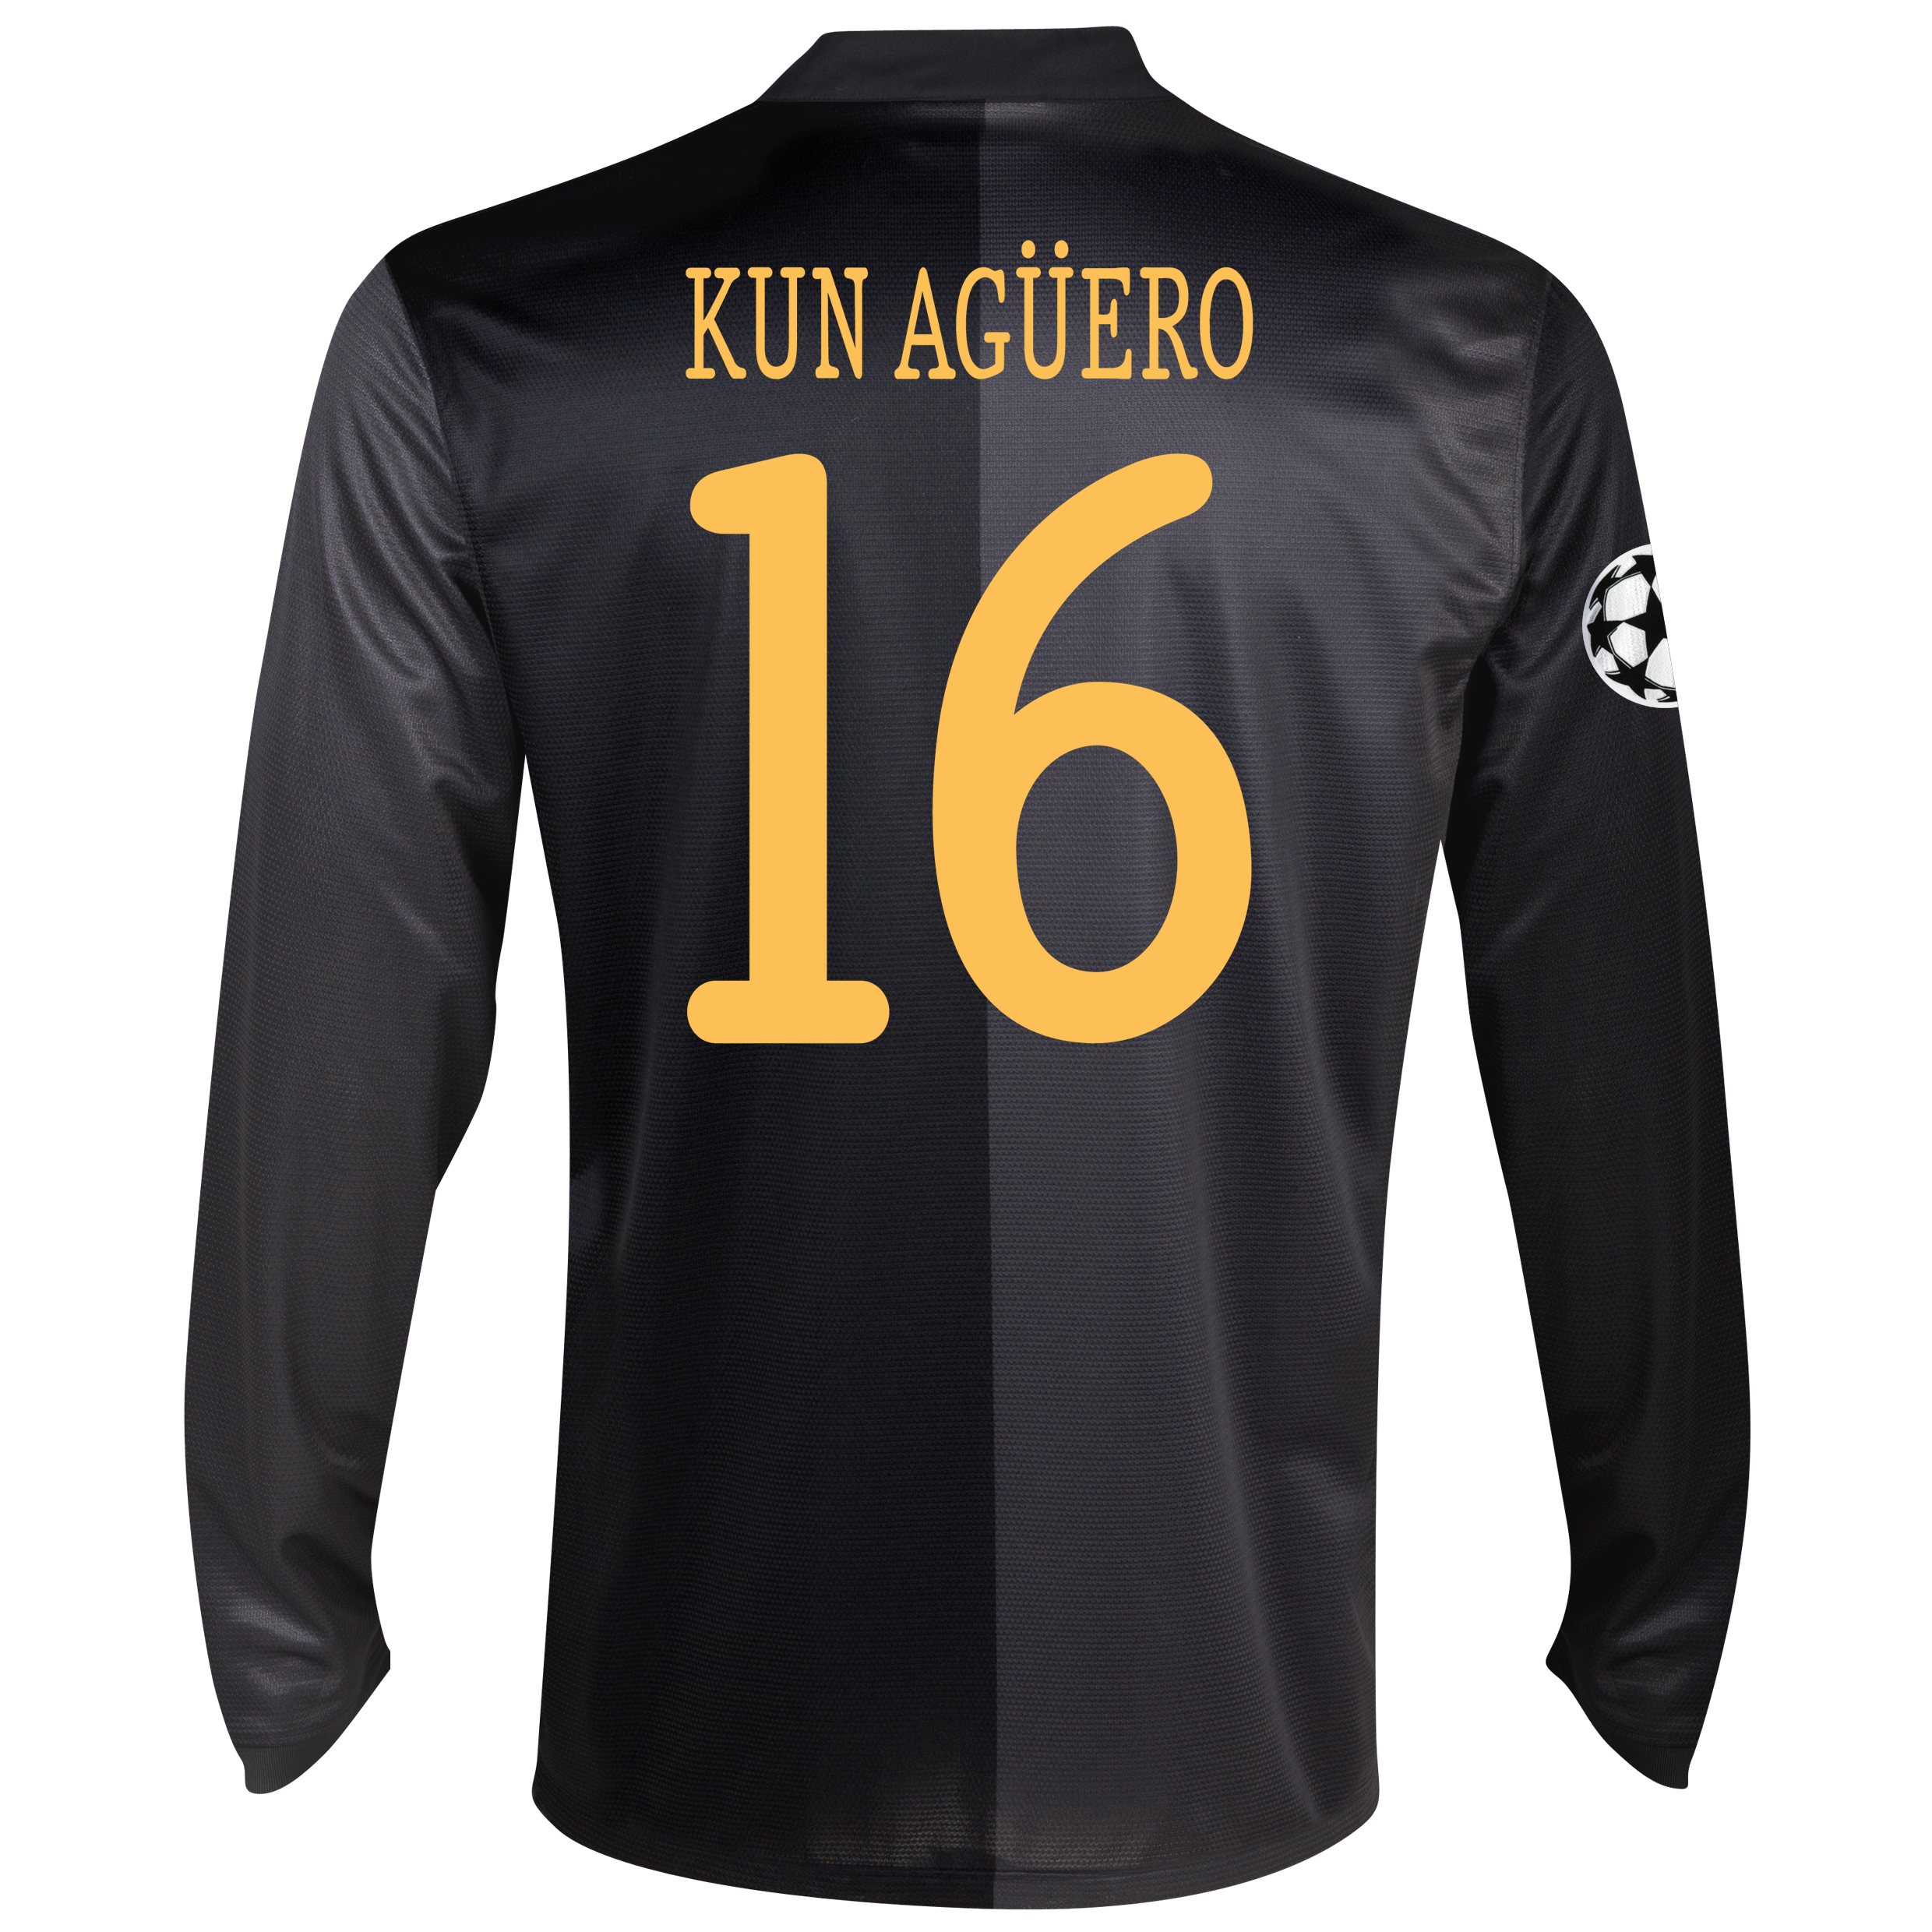 Manchester City UEFA Champions League Away Shirt 2013/14 - Long Sleeved with Kun Agüero  16 printing